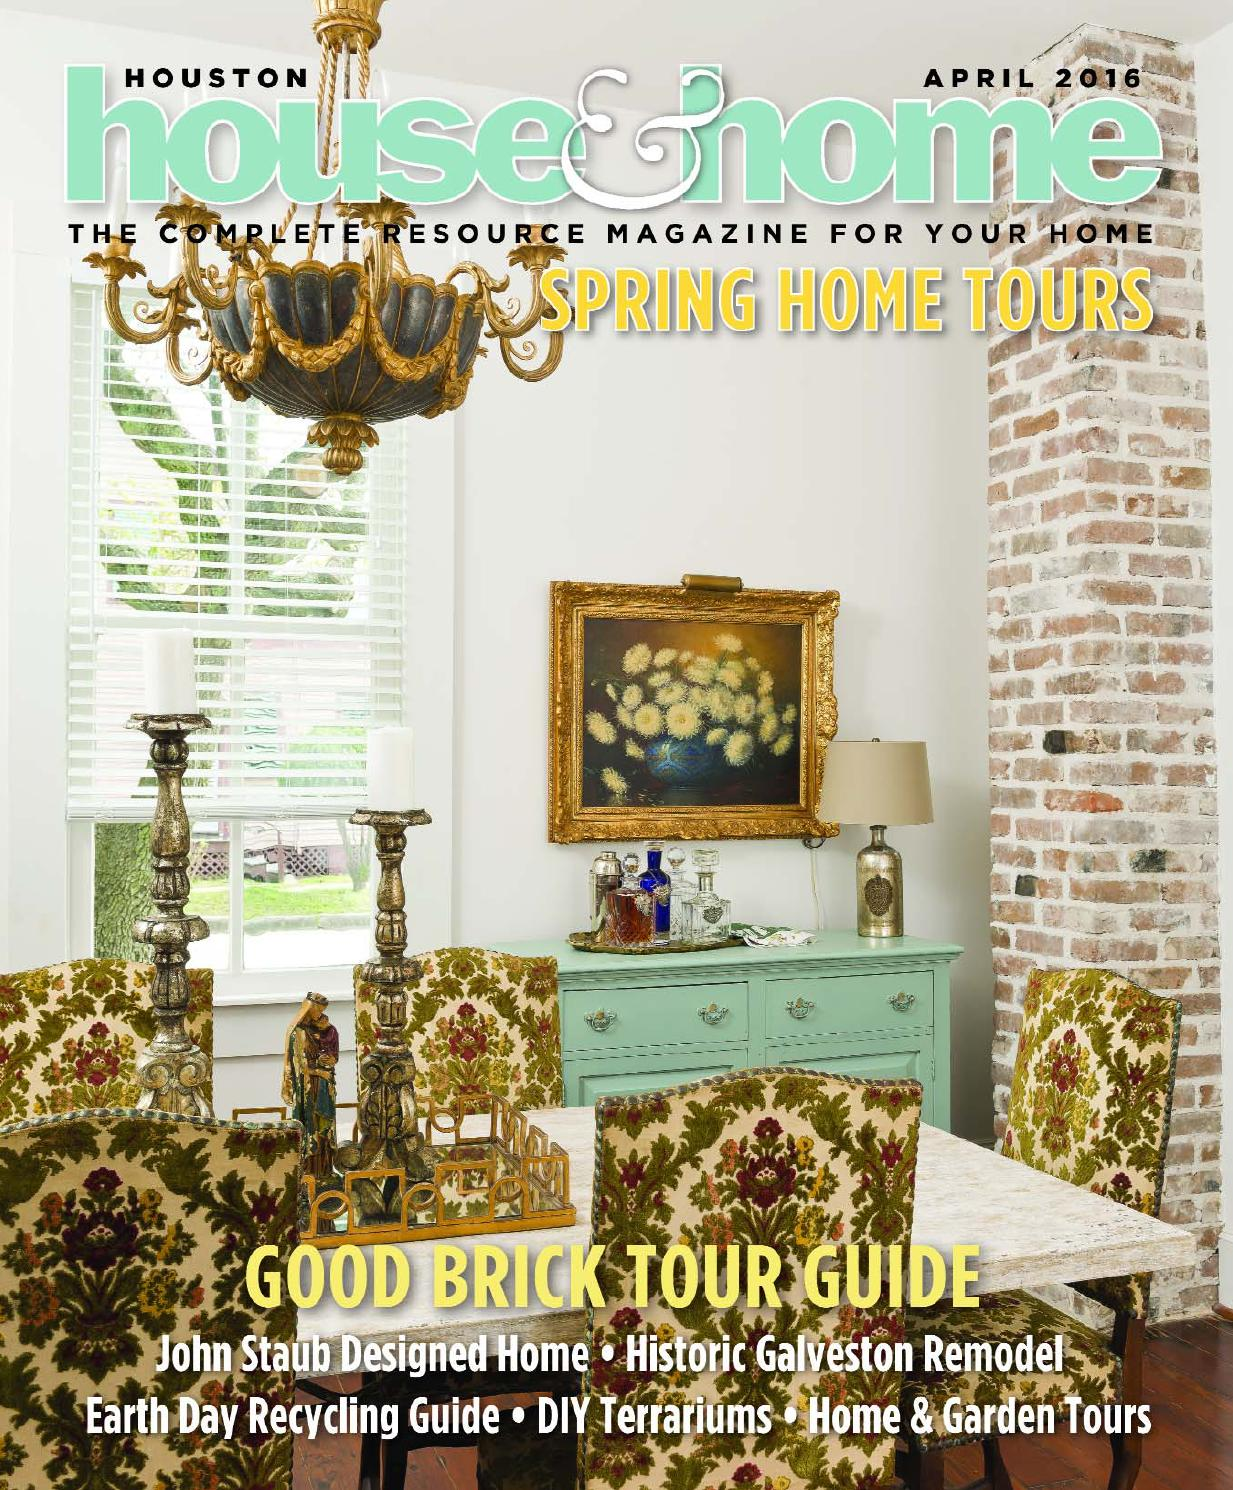 houston house home magazine 0416 houhousehome vir - Houston Home And Garden Magazine